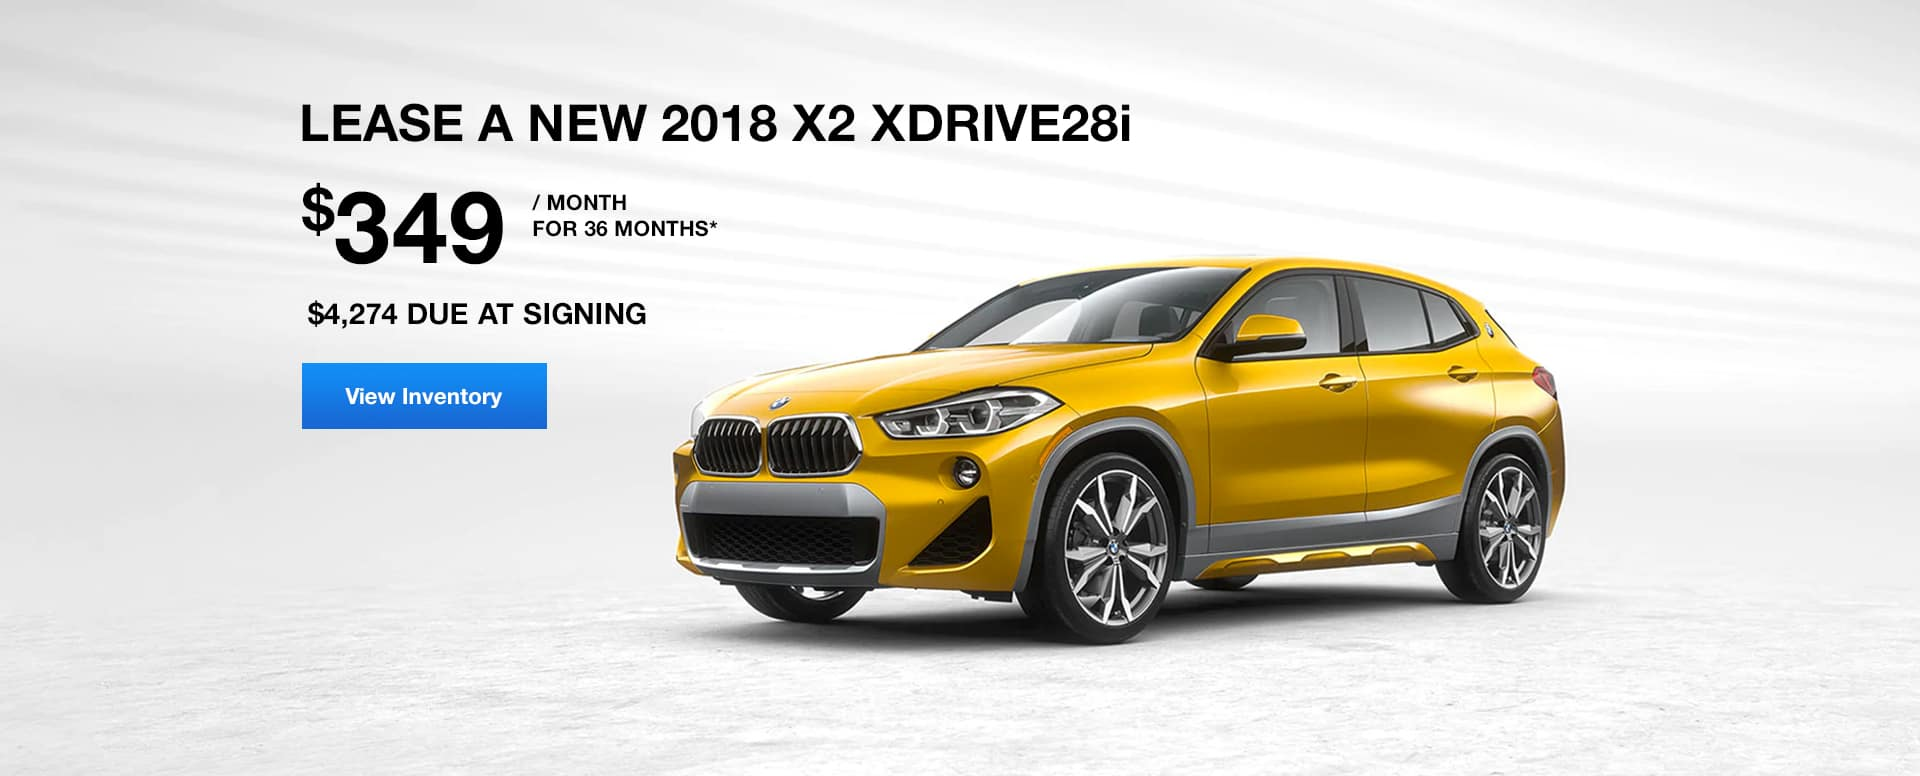 x2 xDrive October Lease Offer